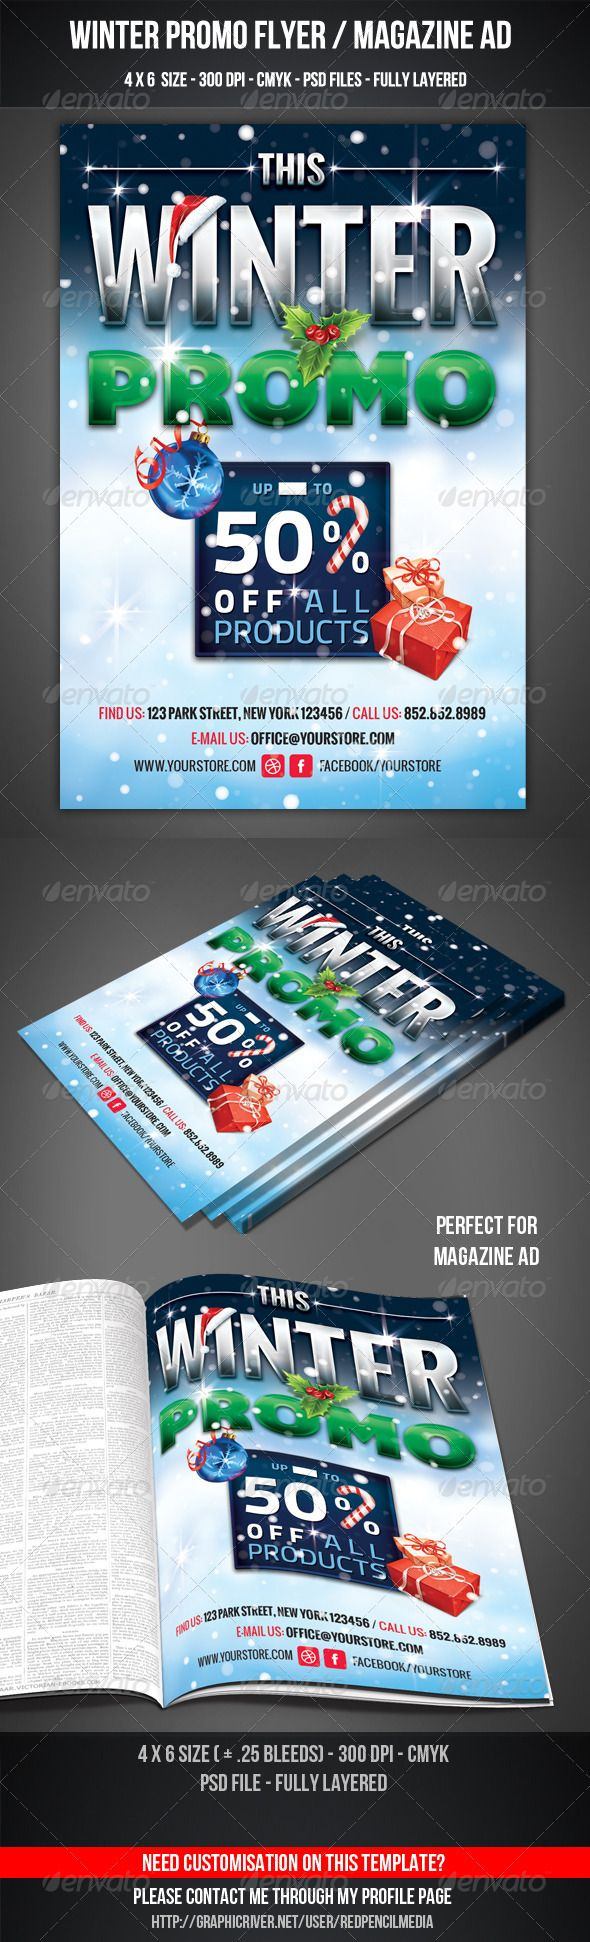 Winter Promo Flyer / Magazine AD  #GraphicRiver        Winter Promo Flyer / Magazine AD     Winter Promo Flyer / Magazine AD  Features and technical specs: • print size: 4×6 inches (Portrait) • bleed area: 0.25 inches • resolution: 300 dpi • color format: CMYK • template file type: Photoshop .psd  Free fonts used in design: Oswald – free for download at:  .google /webfonts Bemio – free for download at:  .losttype /font/?name=bemio TitilliumText22L – free for download at:  .cufonfonts…